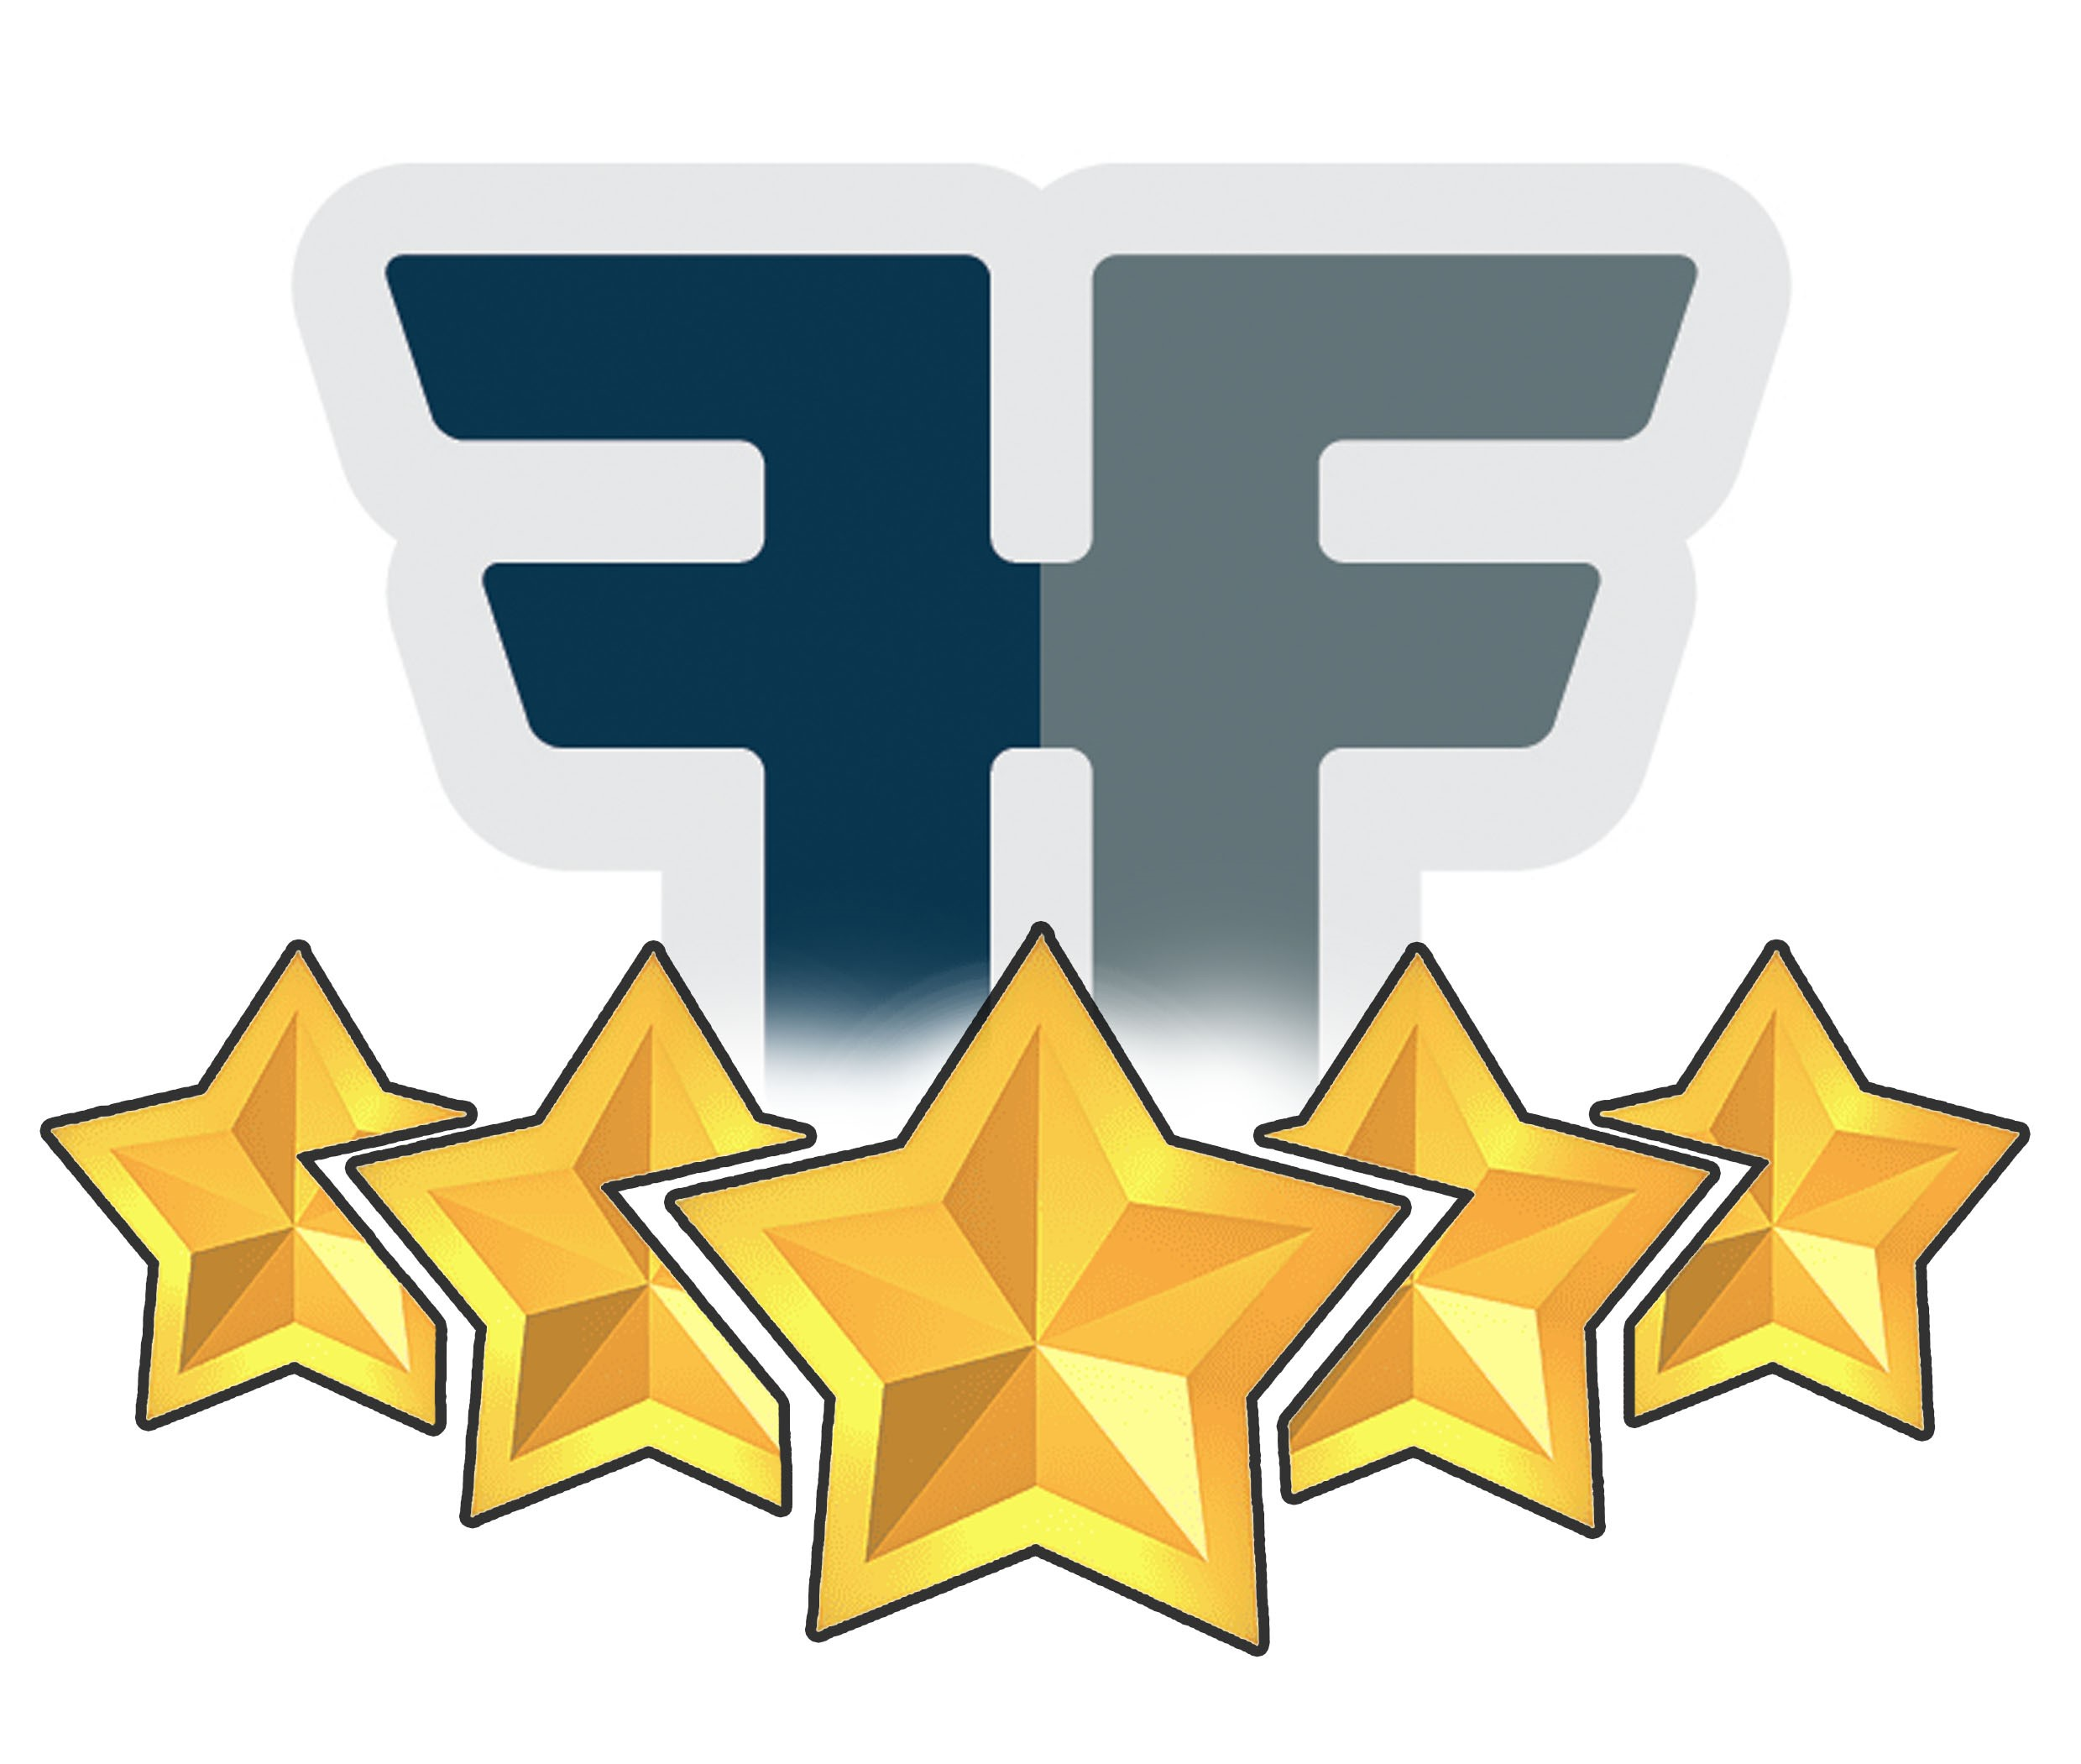 Another 5 star review for Financial Fortress !